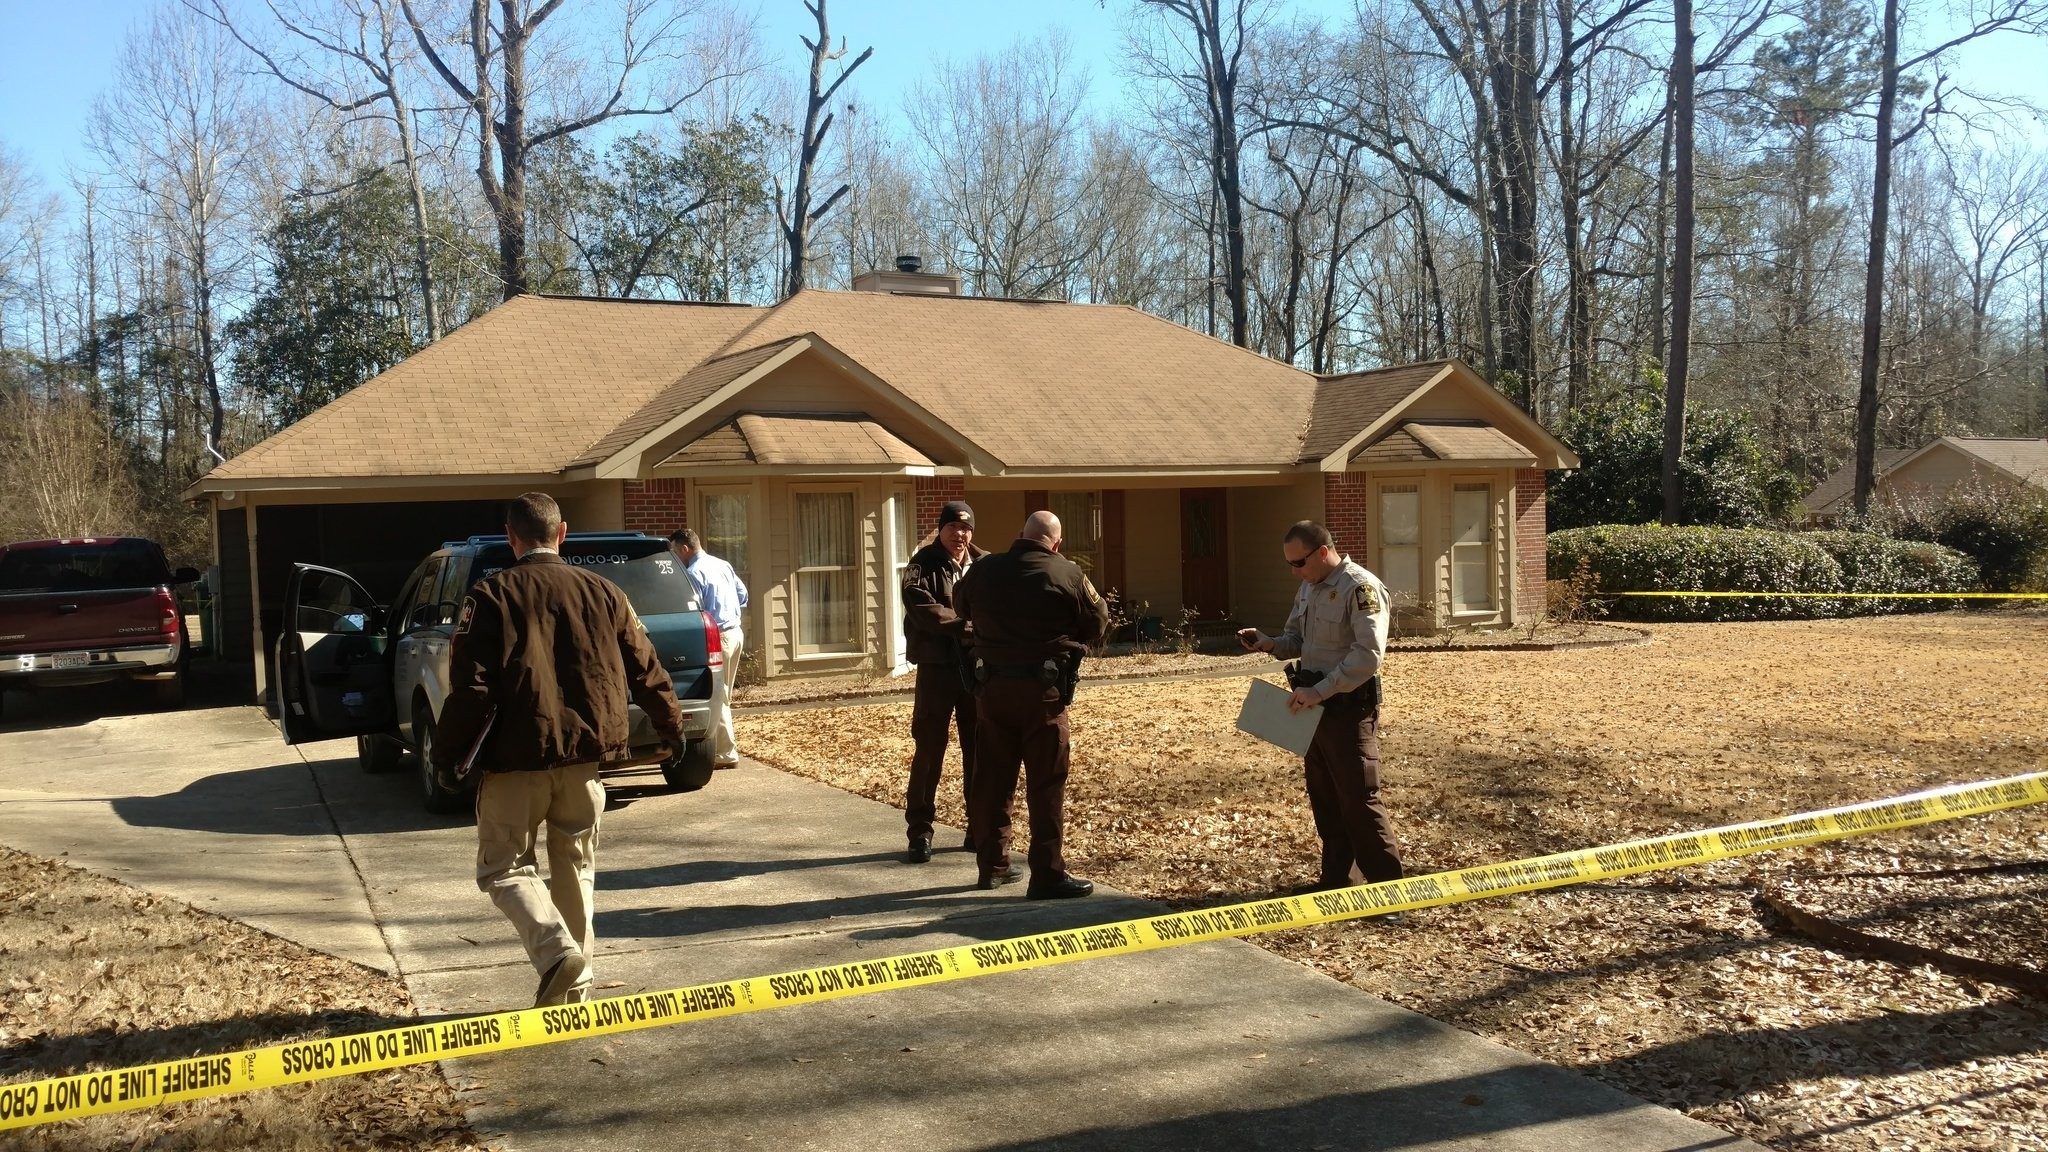 55-year-old woman fatally shot son after calling 911 to